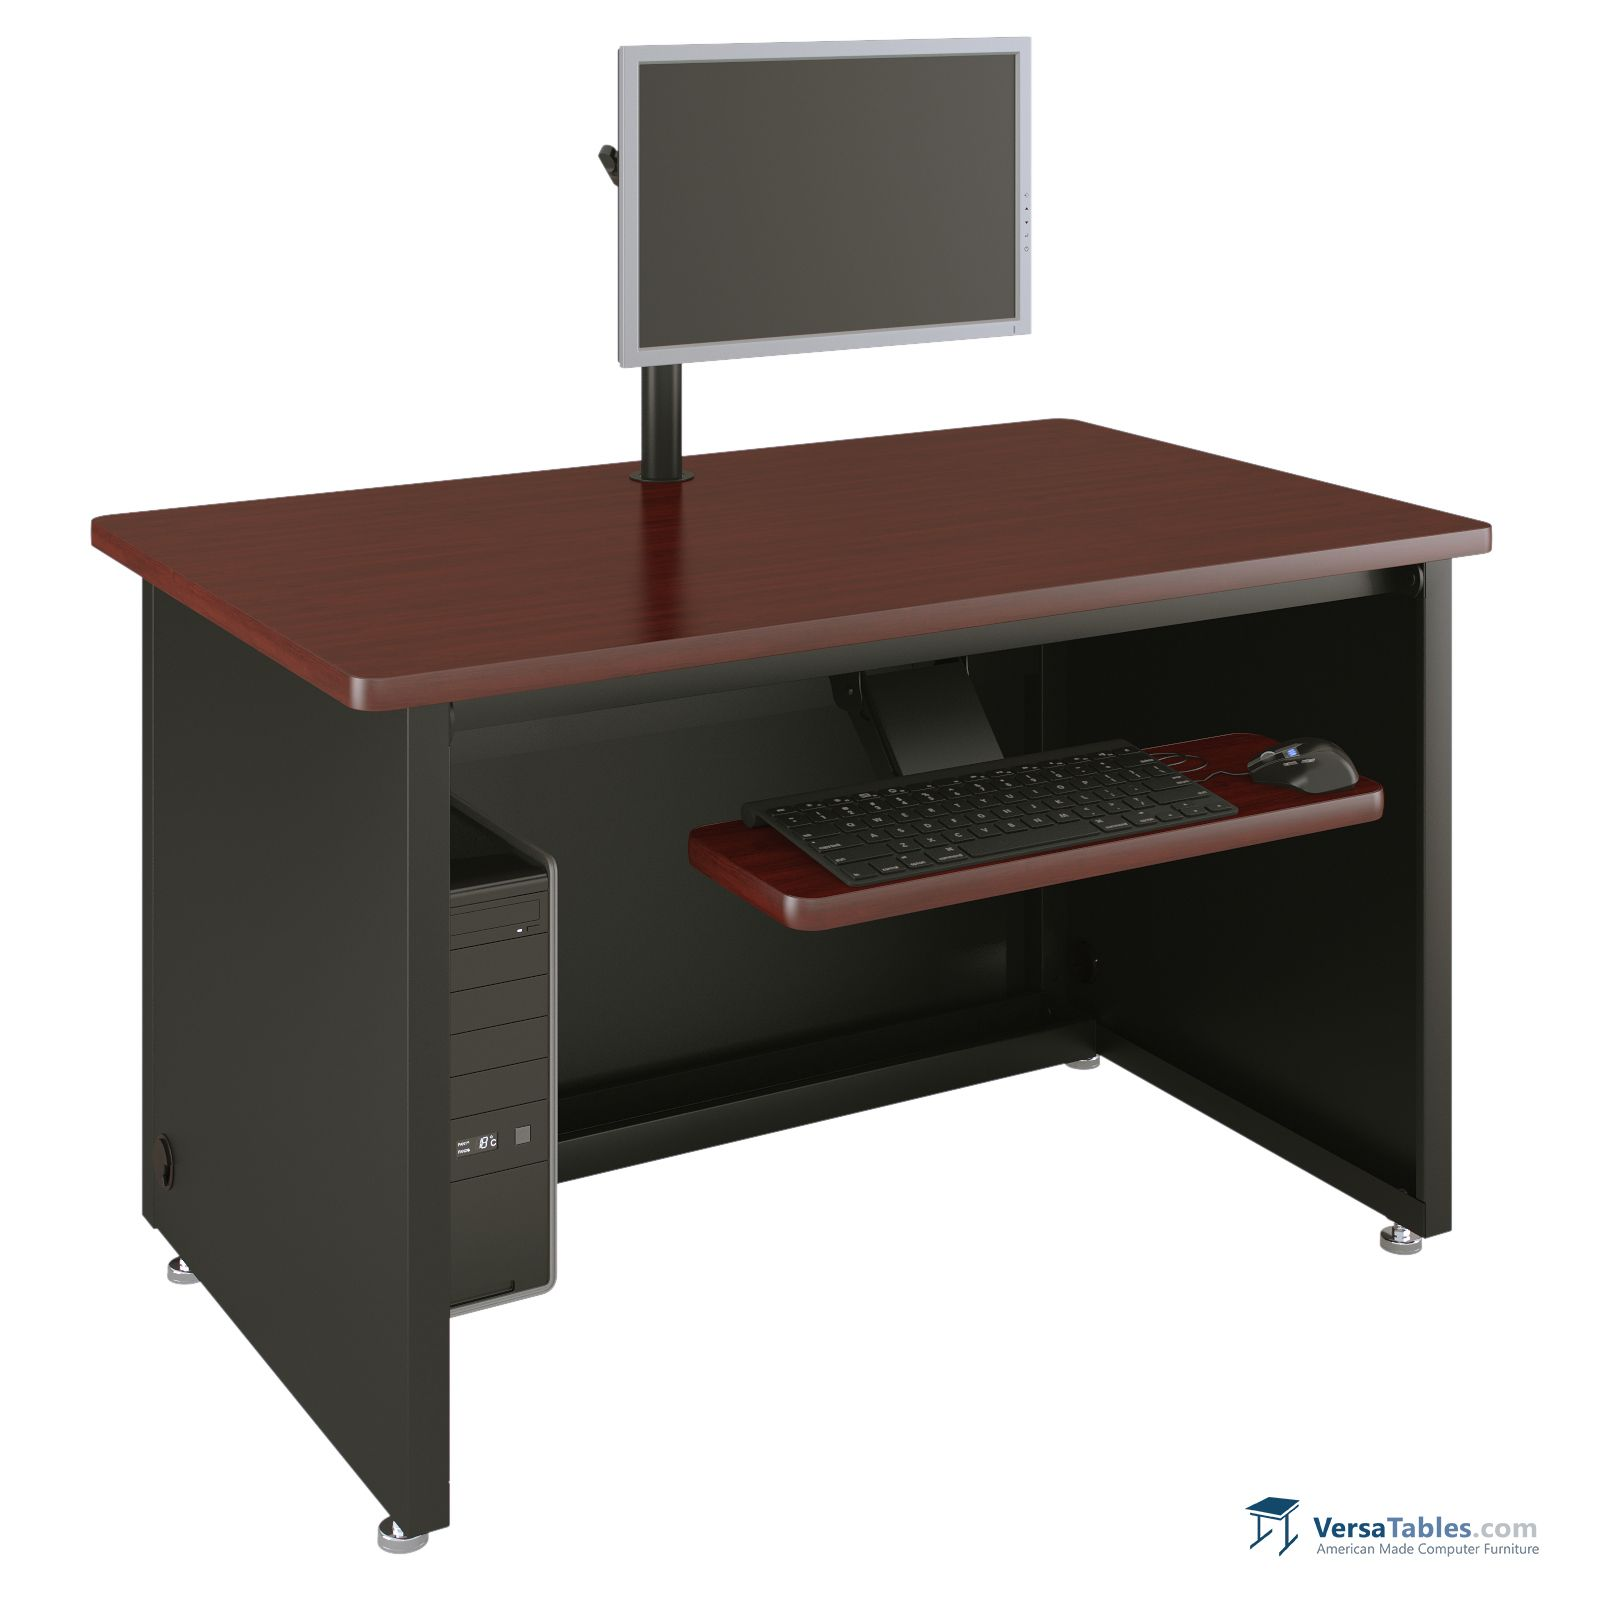 Pin by Versa Tables on Enclosed Versa Desk CD Series